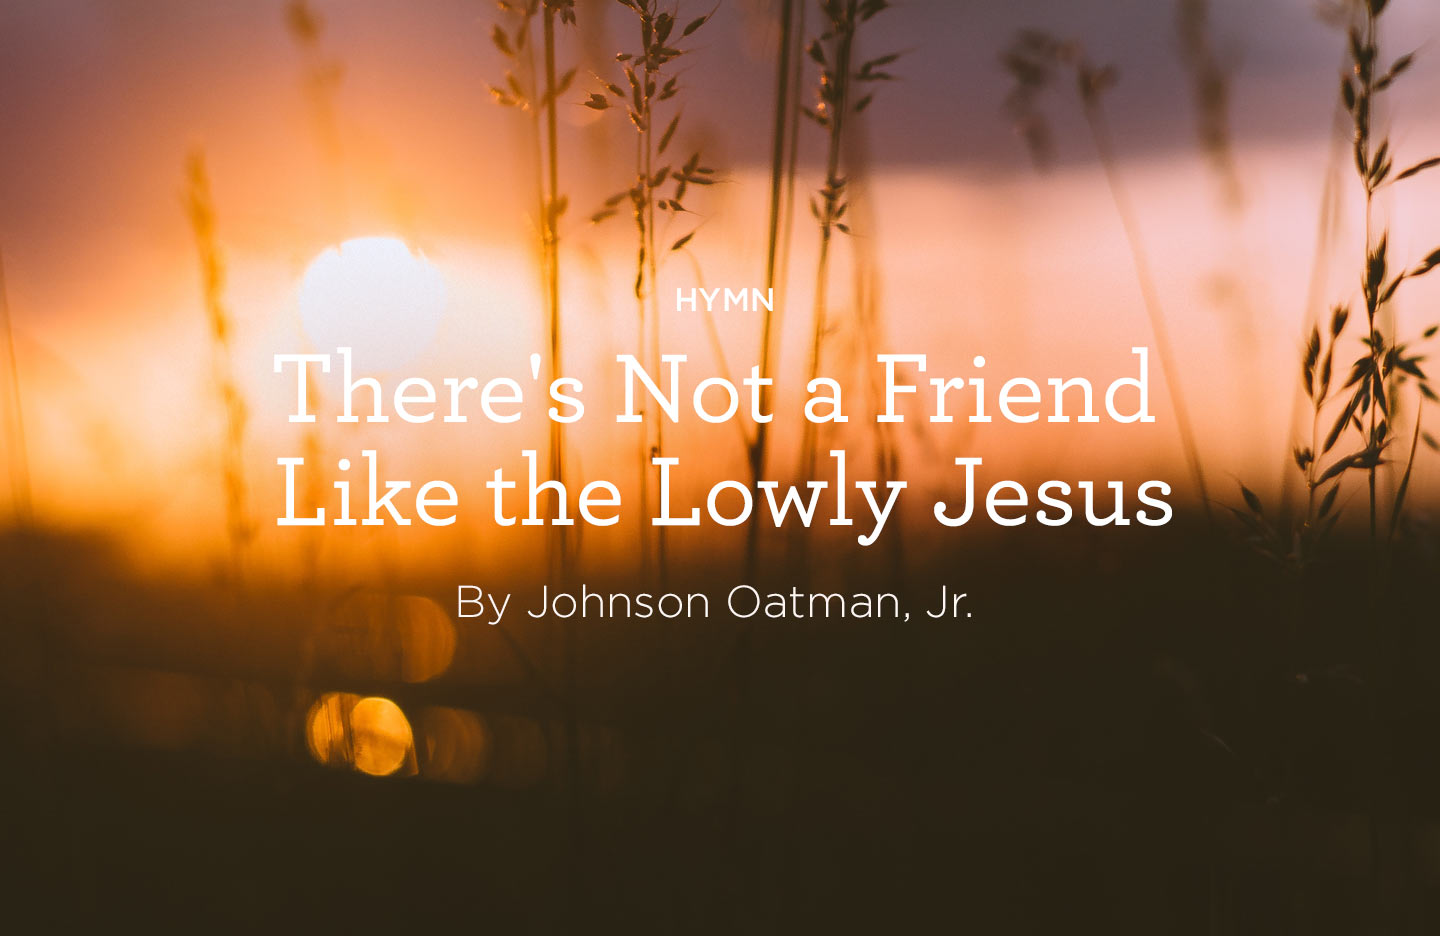 There's-Not-a-Friend-Like-the-Lowly-Jesus